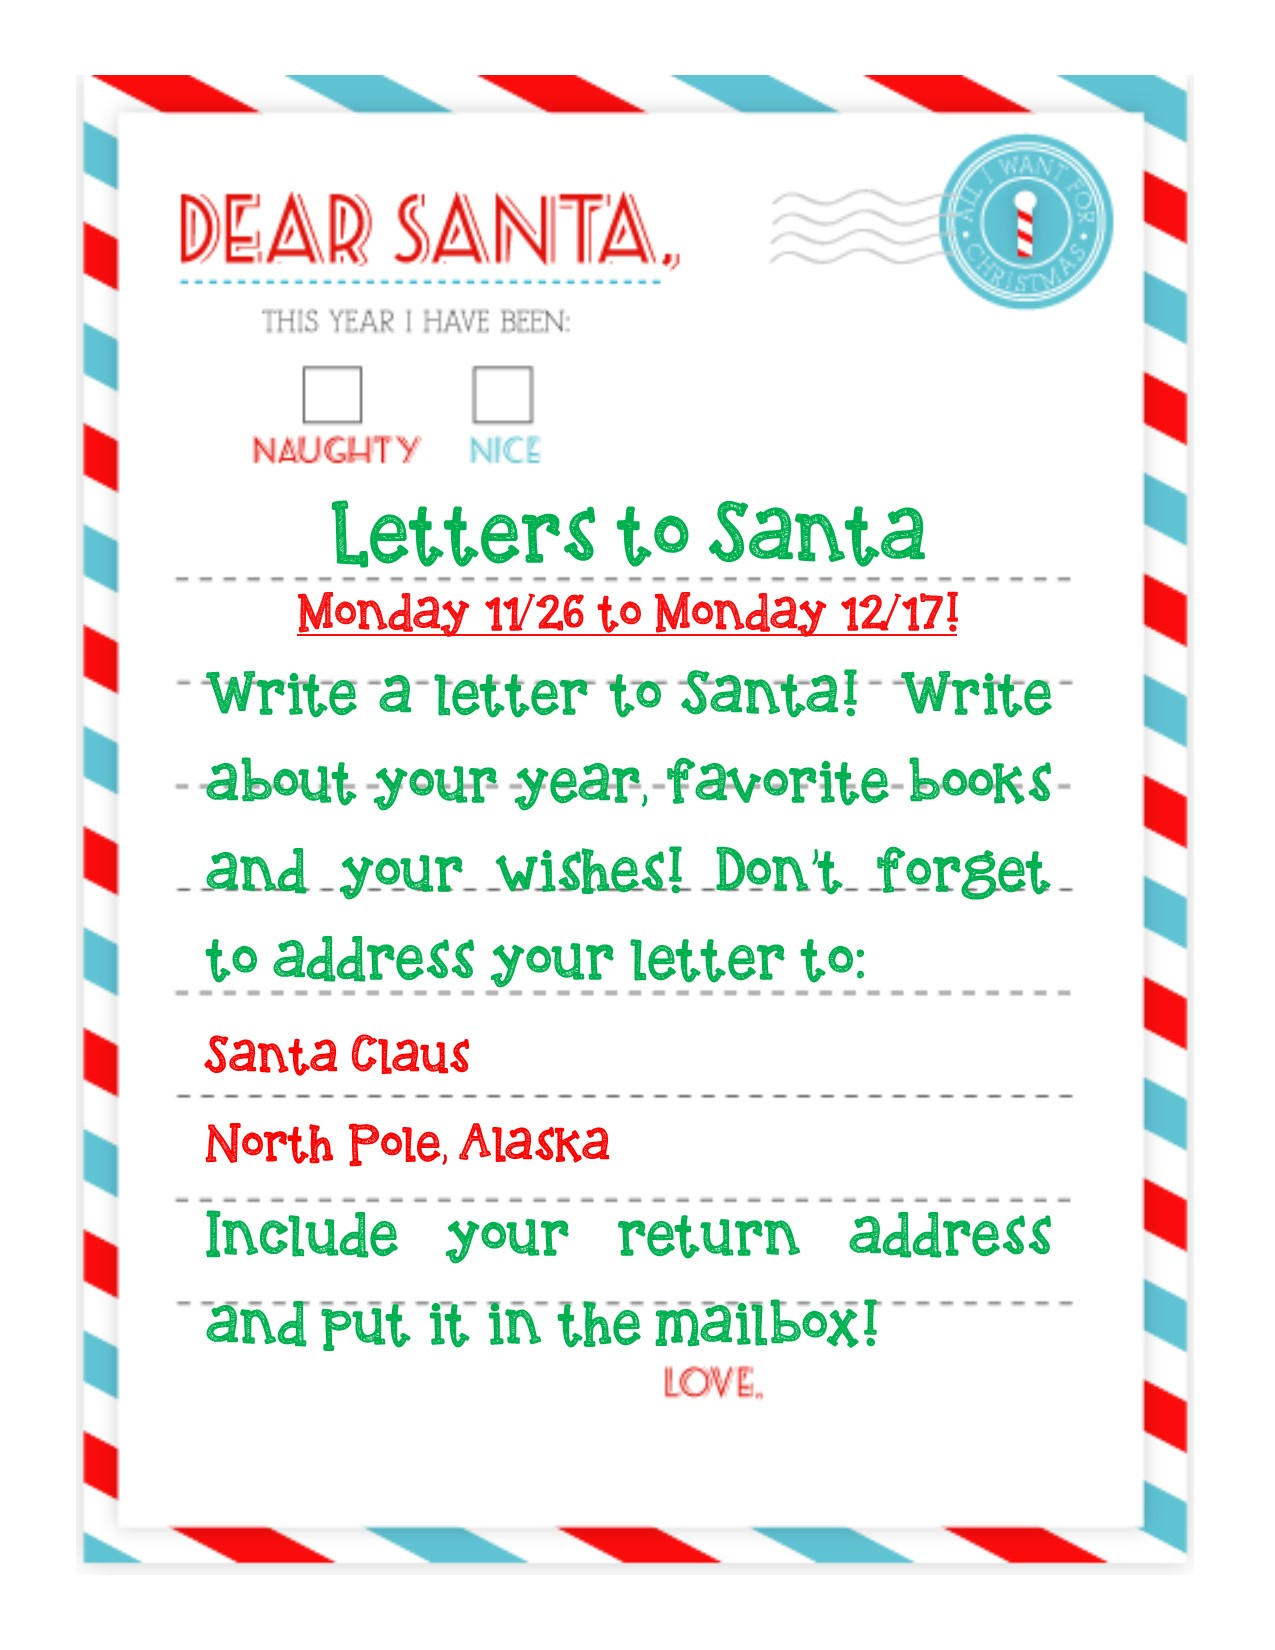 Letters to Santa 2018